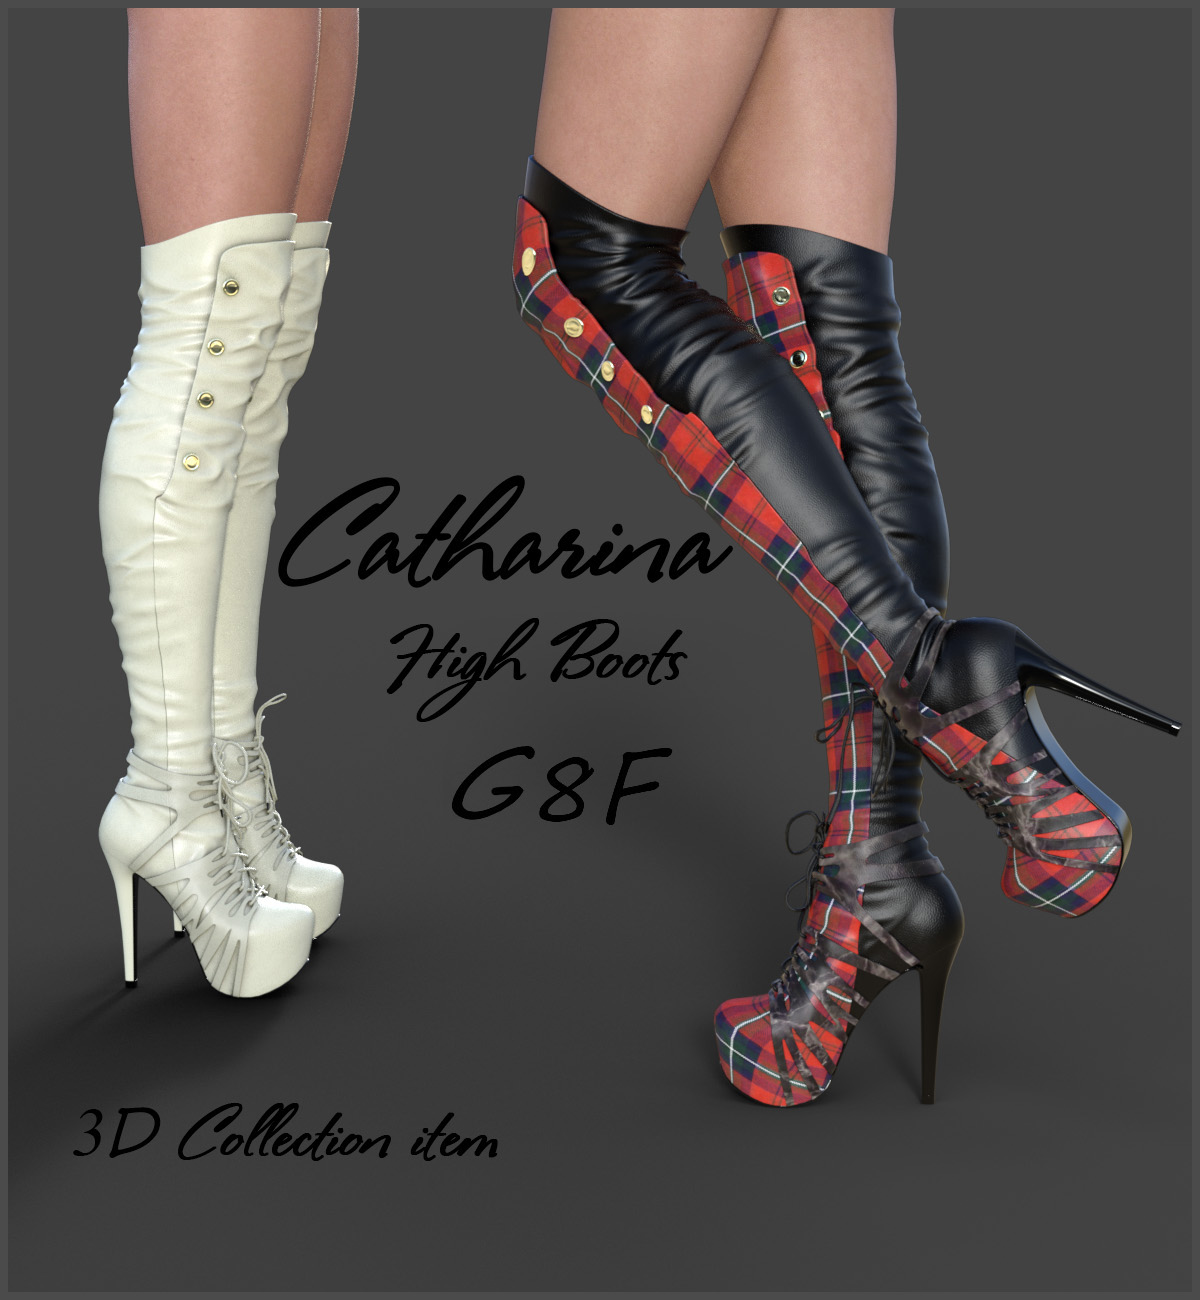 Catharina High Boots for Genesis 8 Females by Onnel